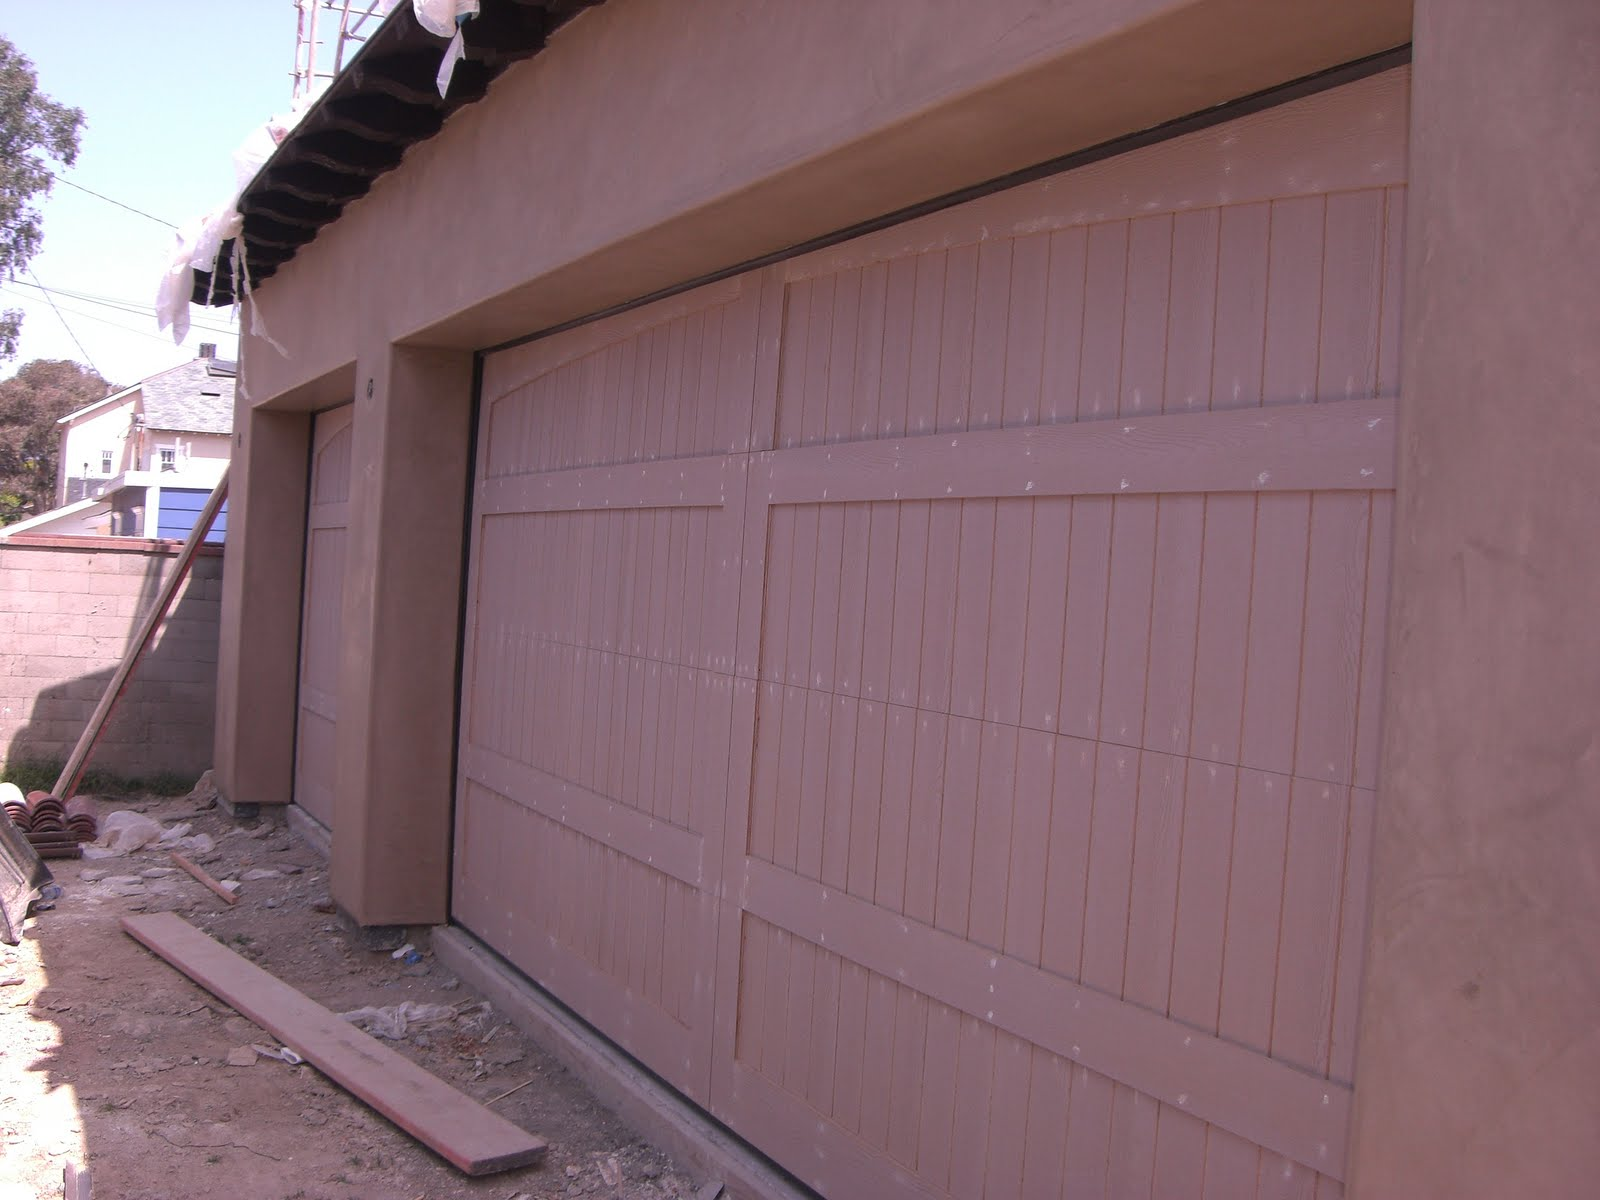 1200 #1D2BAE Garage Doors Just Installed. They Will Be Stained A Dark Brown Color  wallpaper Dark Wood Garage Doors 36951600